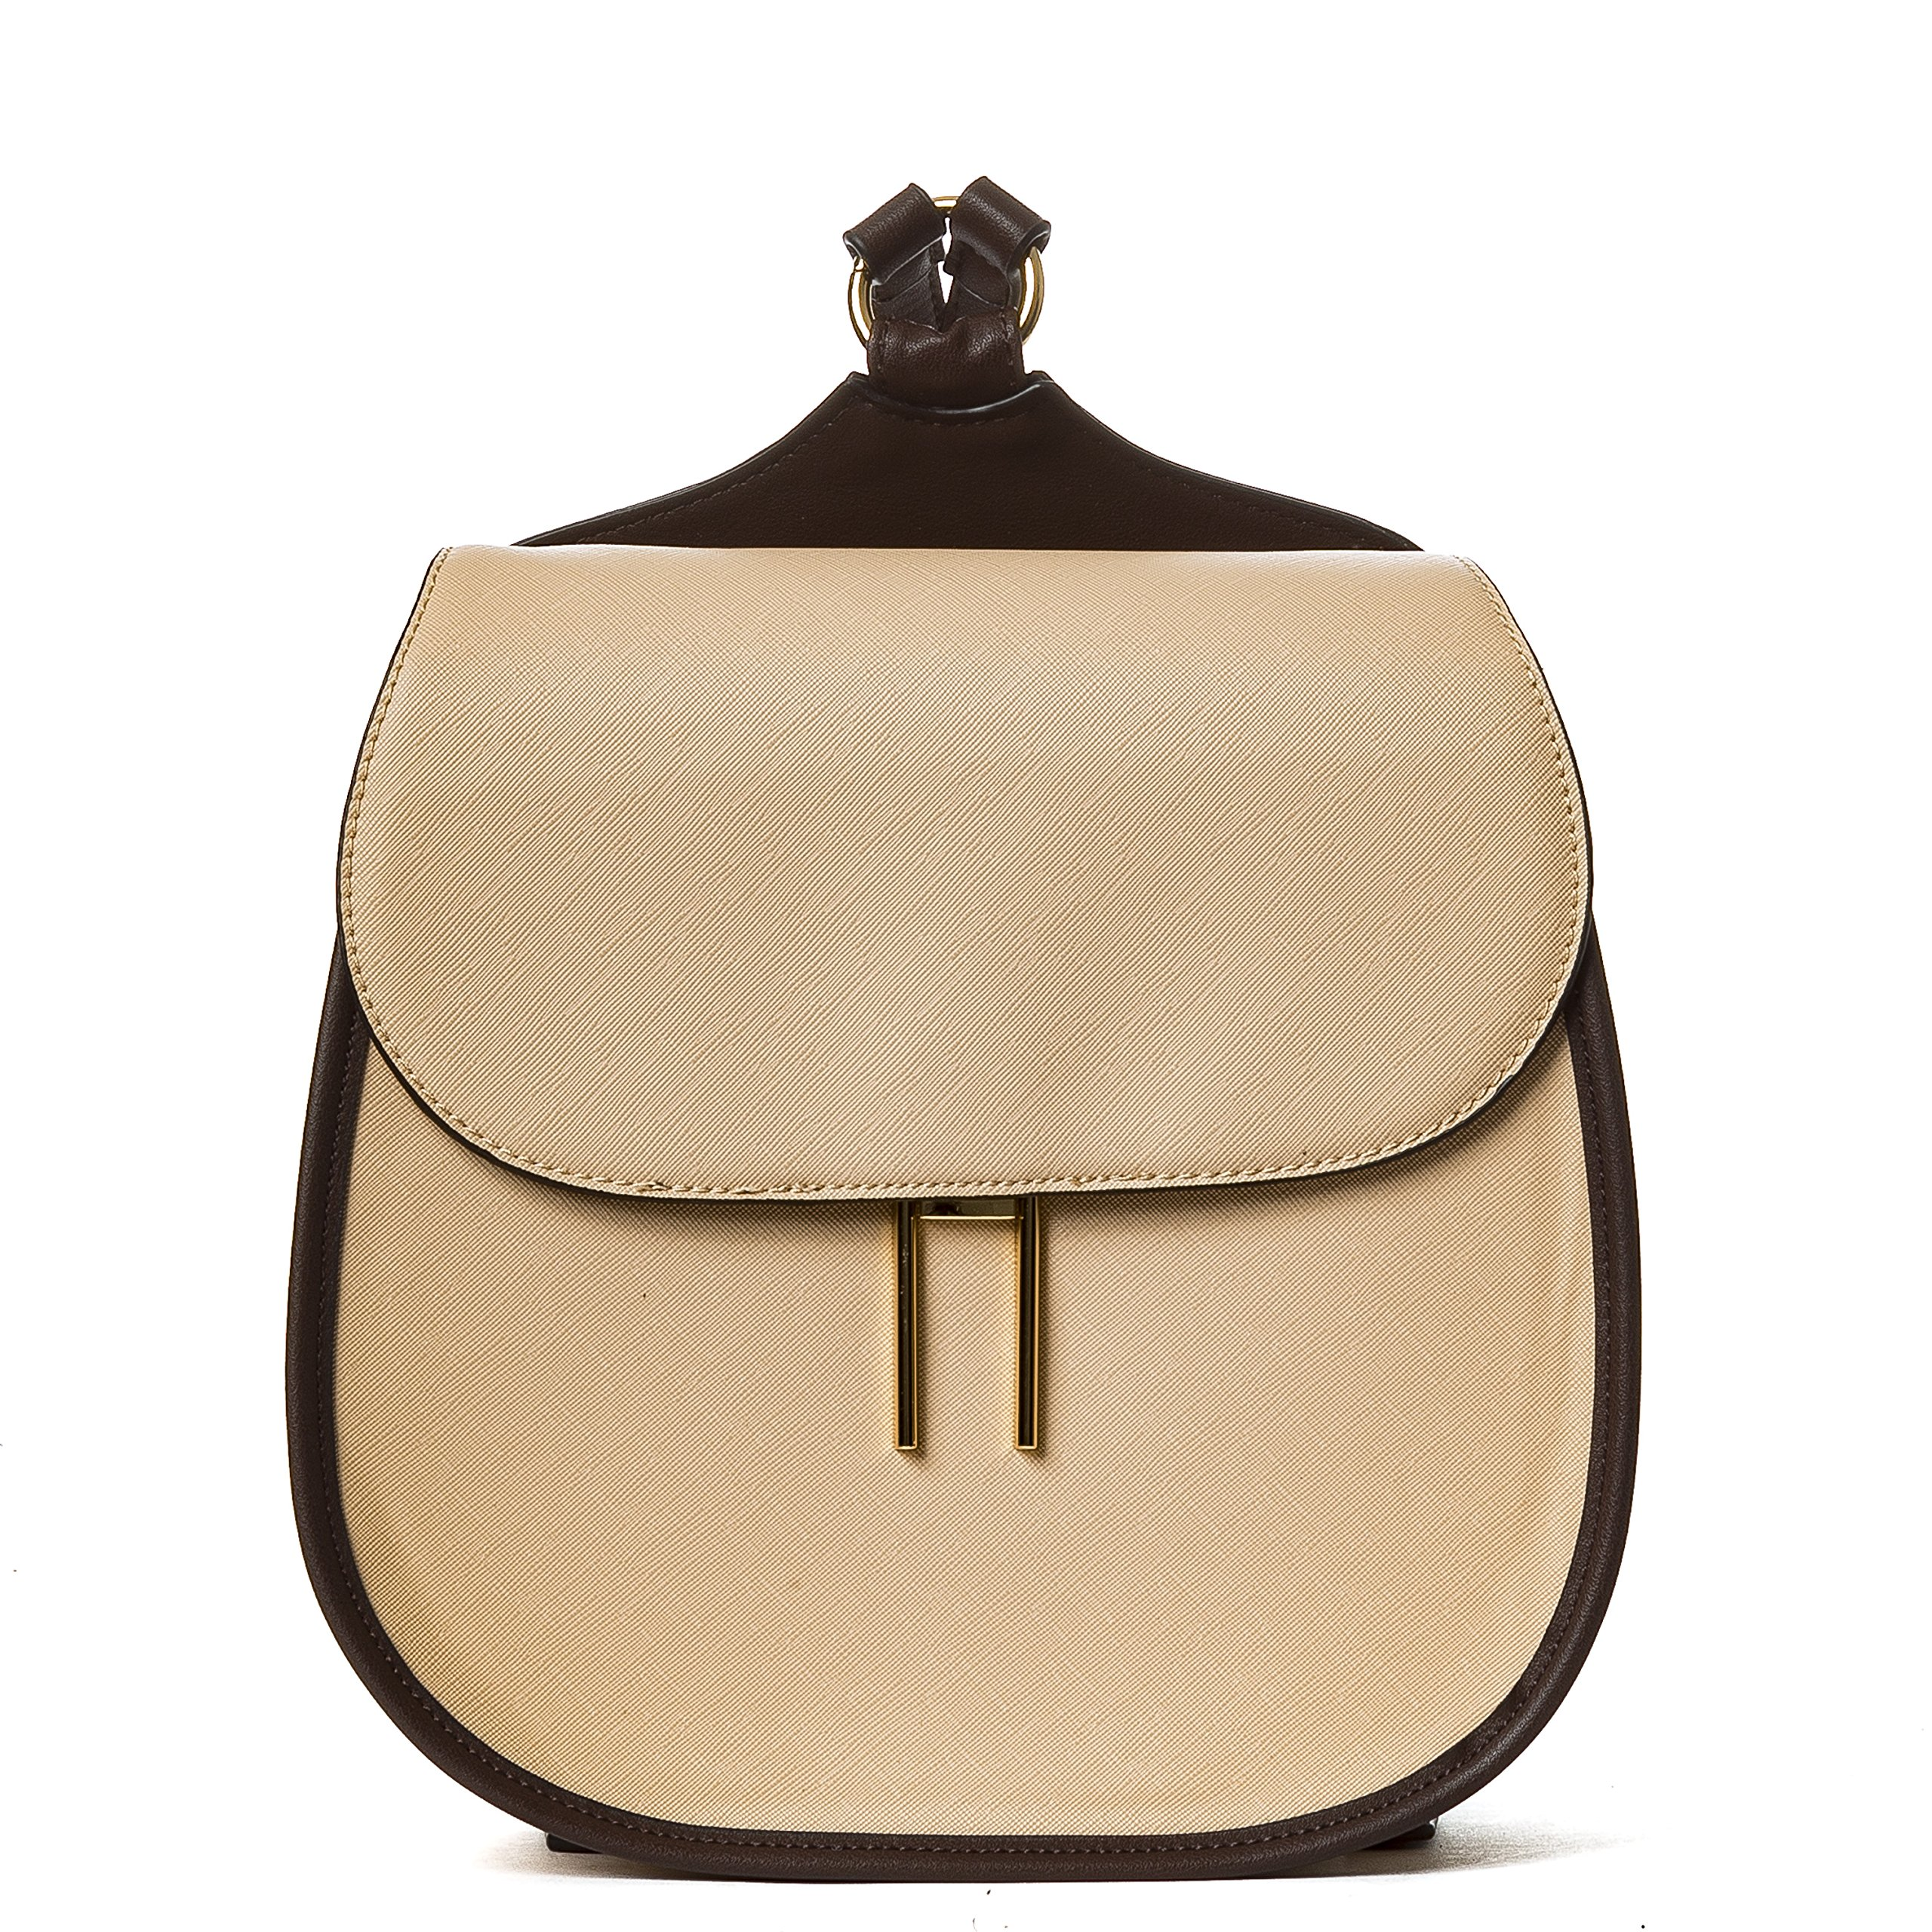 Handbag Republic PU Small Leather Backpack Cute Korean Style School Travel Bag For Gilrs Ladies and Women